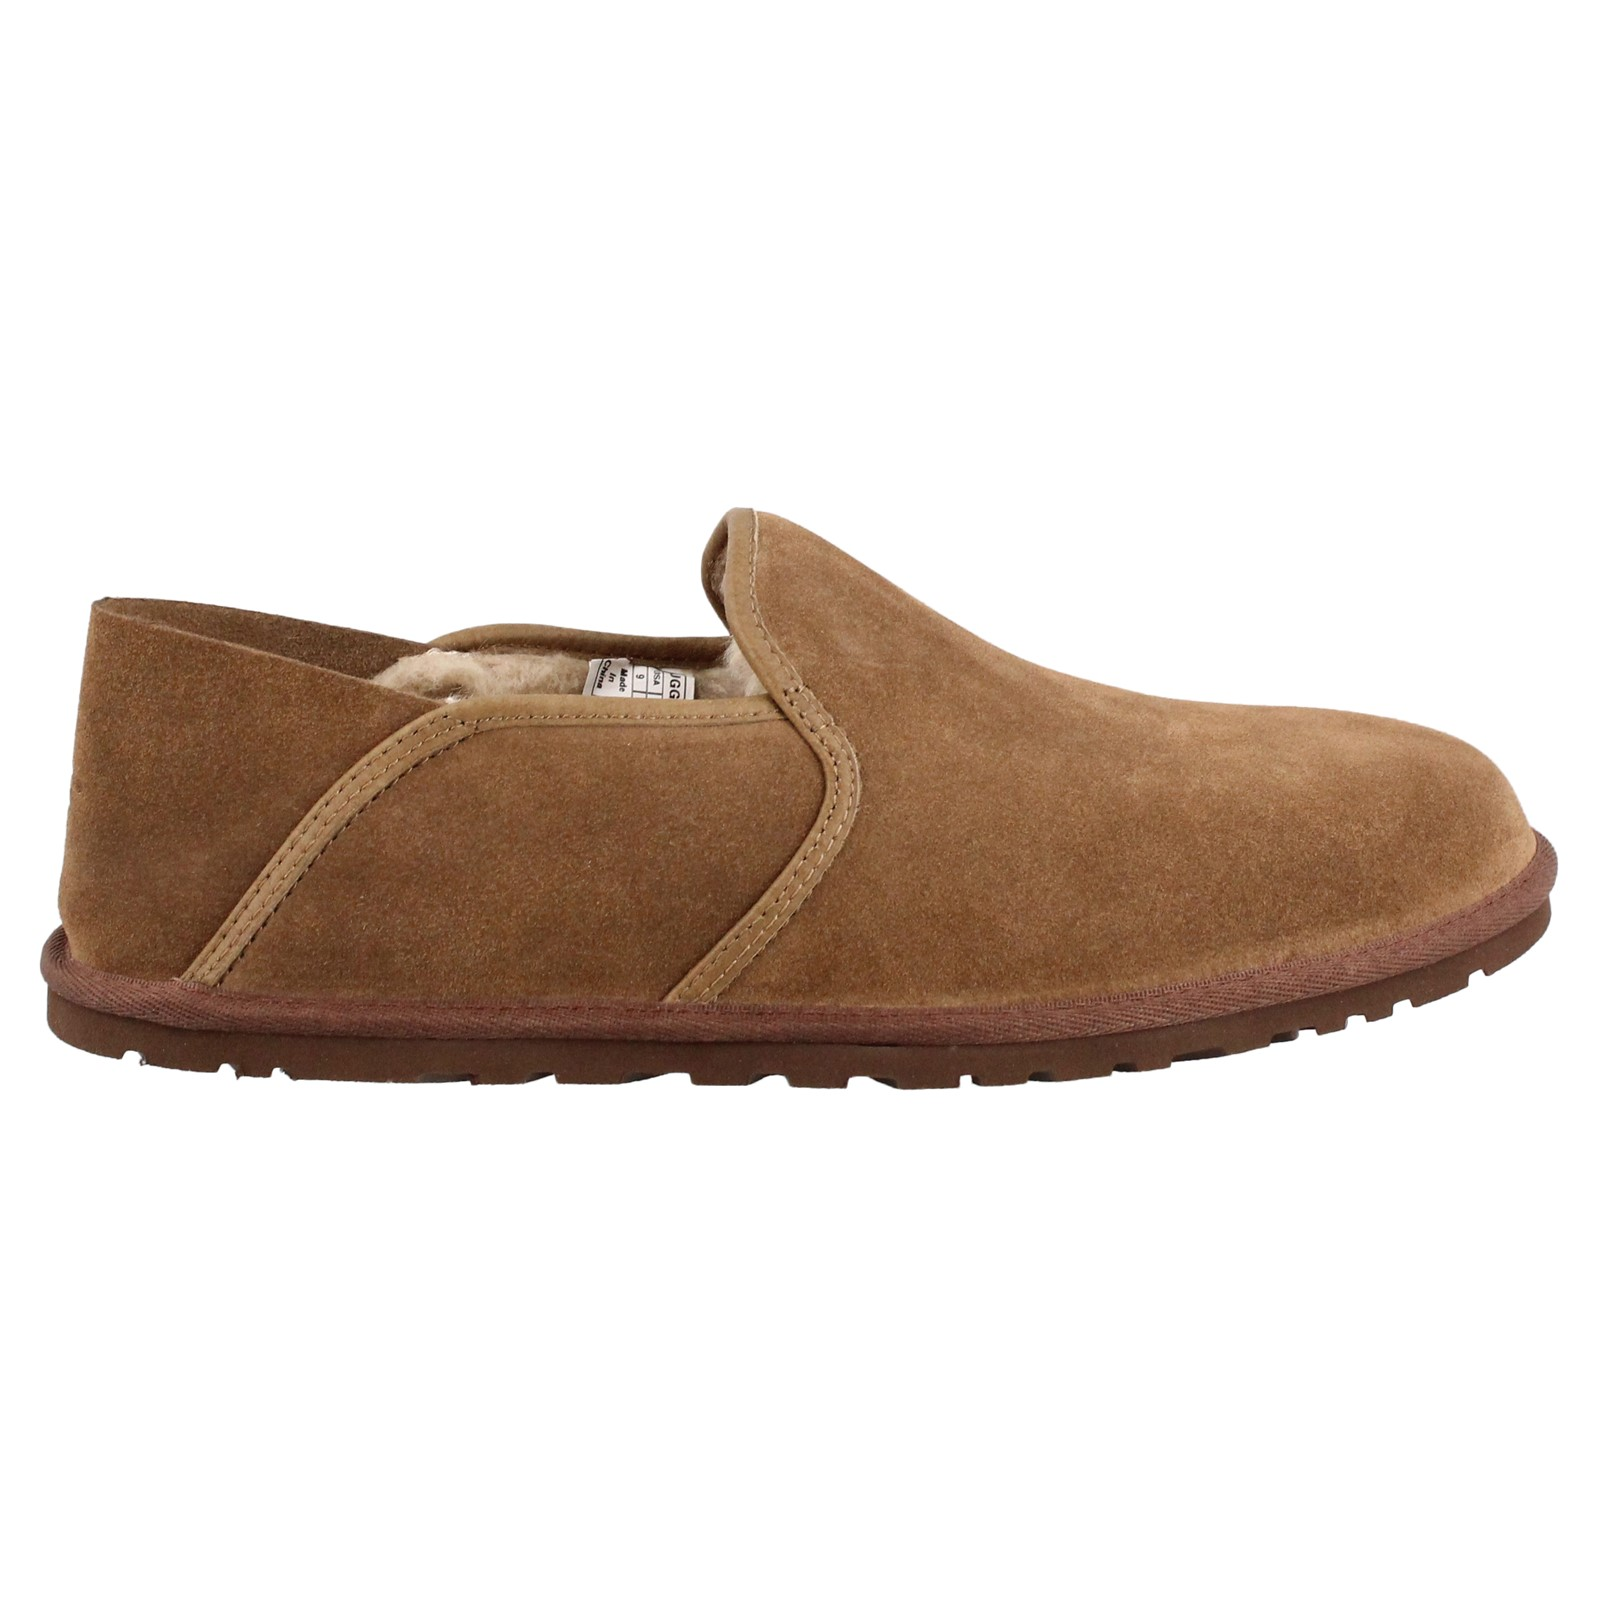 Men's Ugg, Cooke Slipper